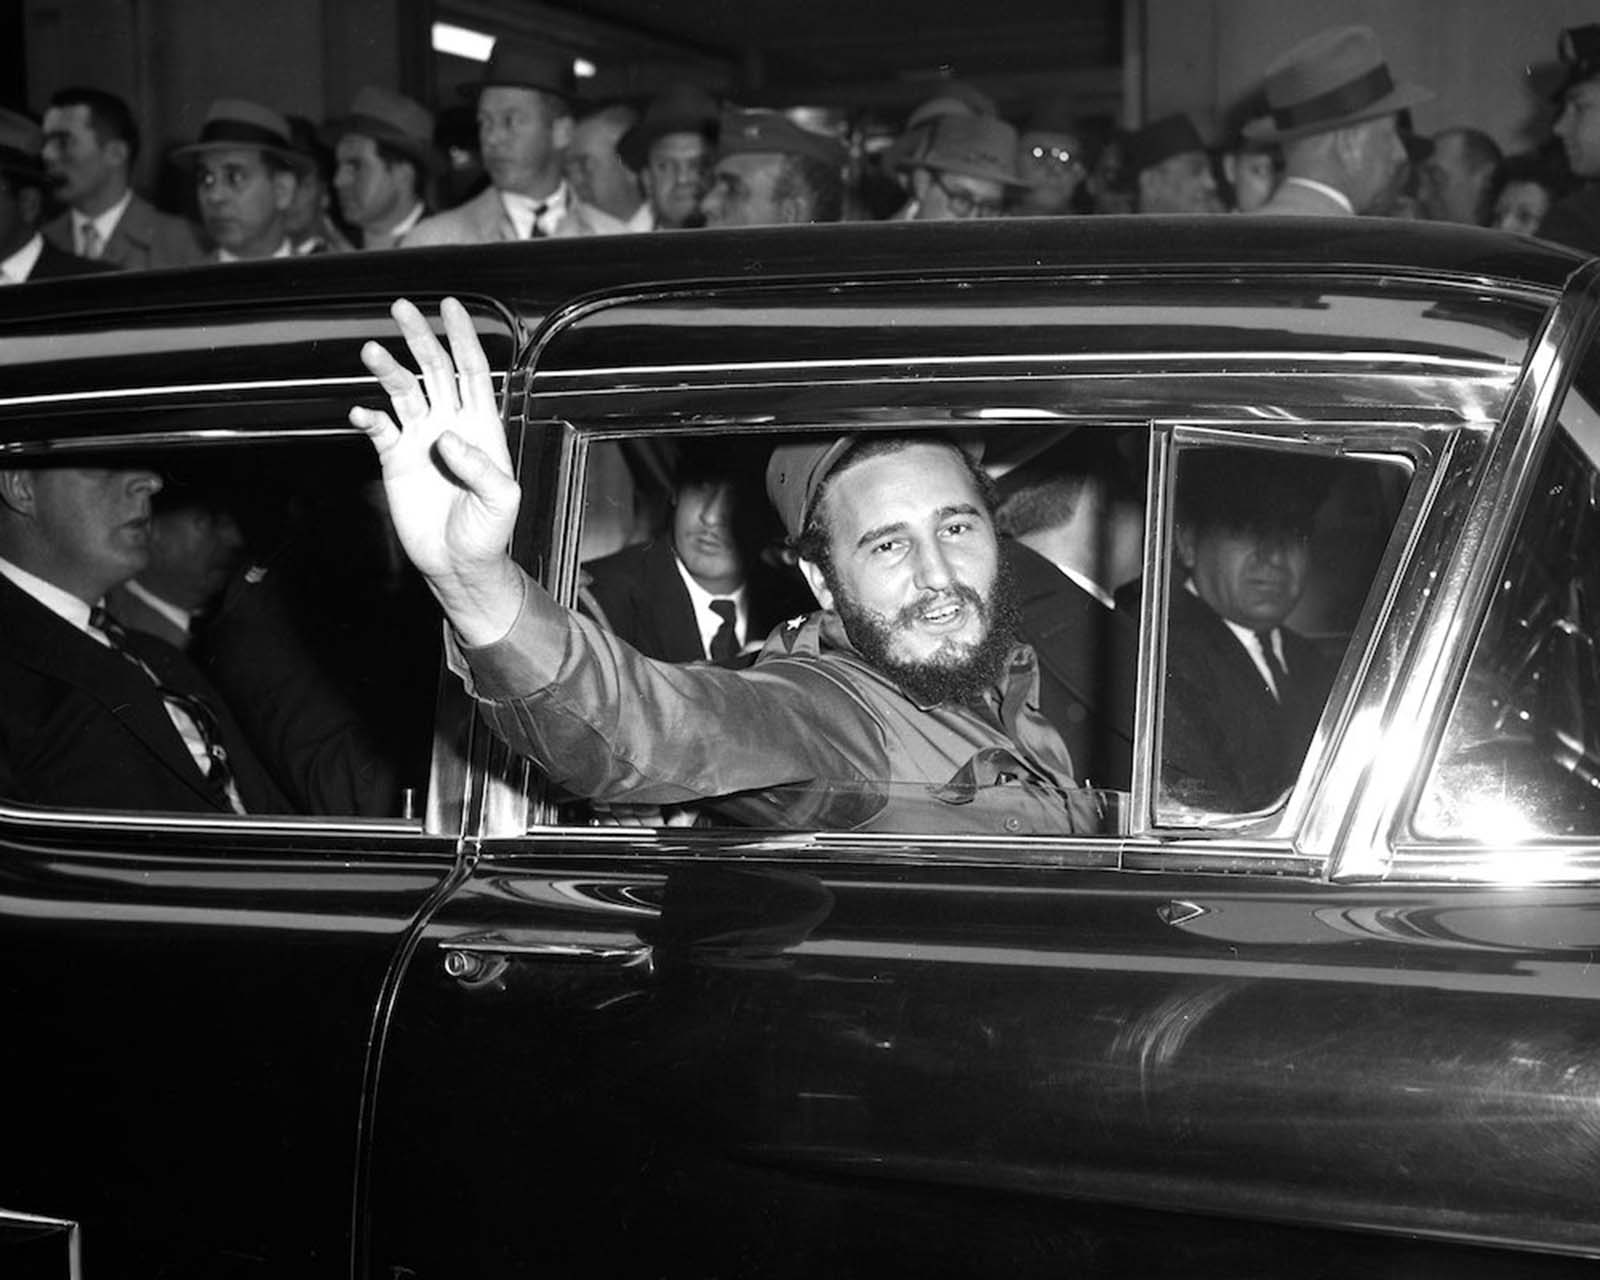 Castro outside the Statler Hotel.